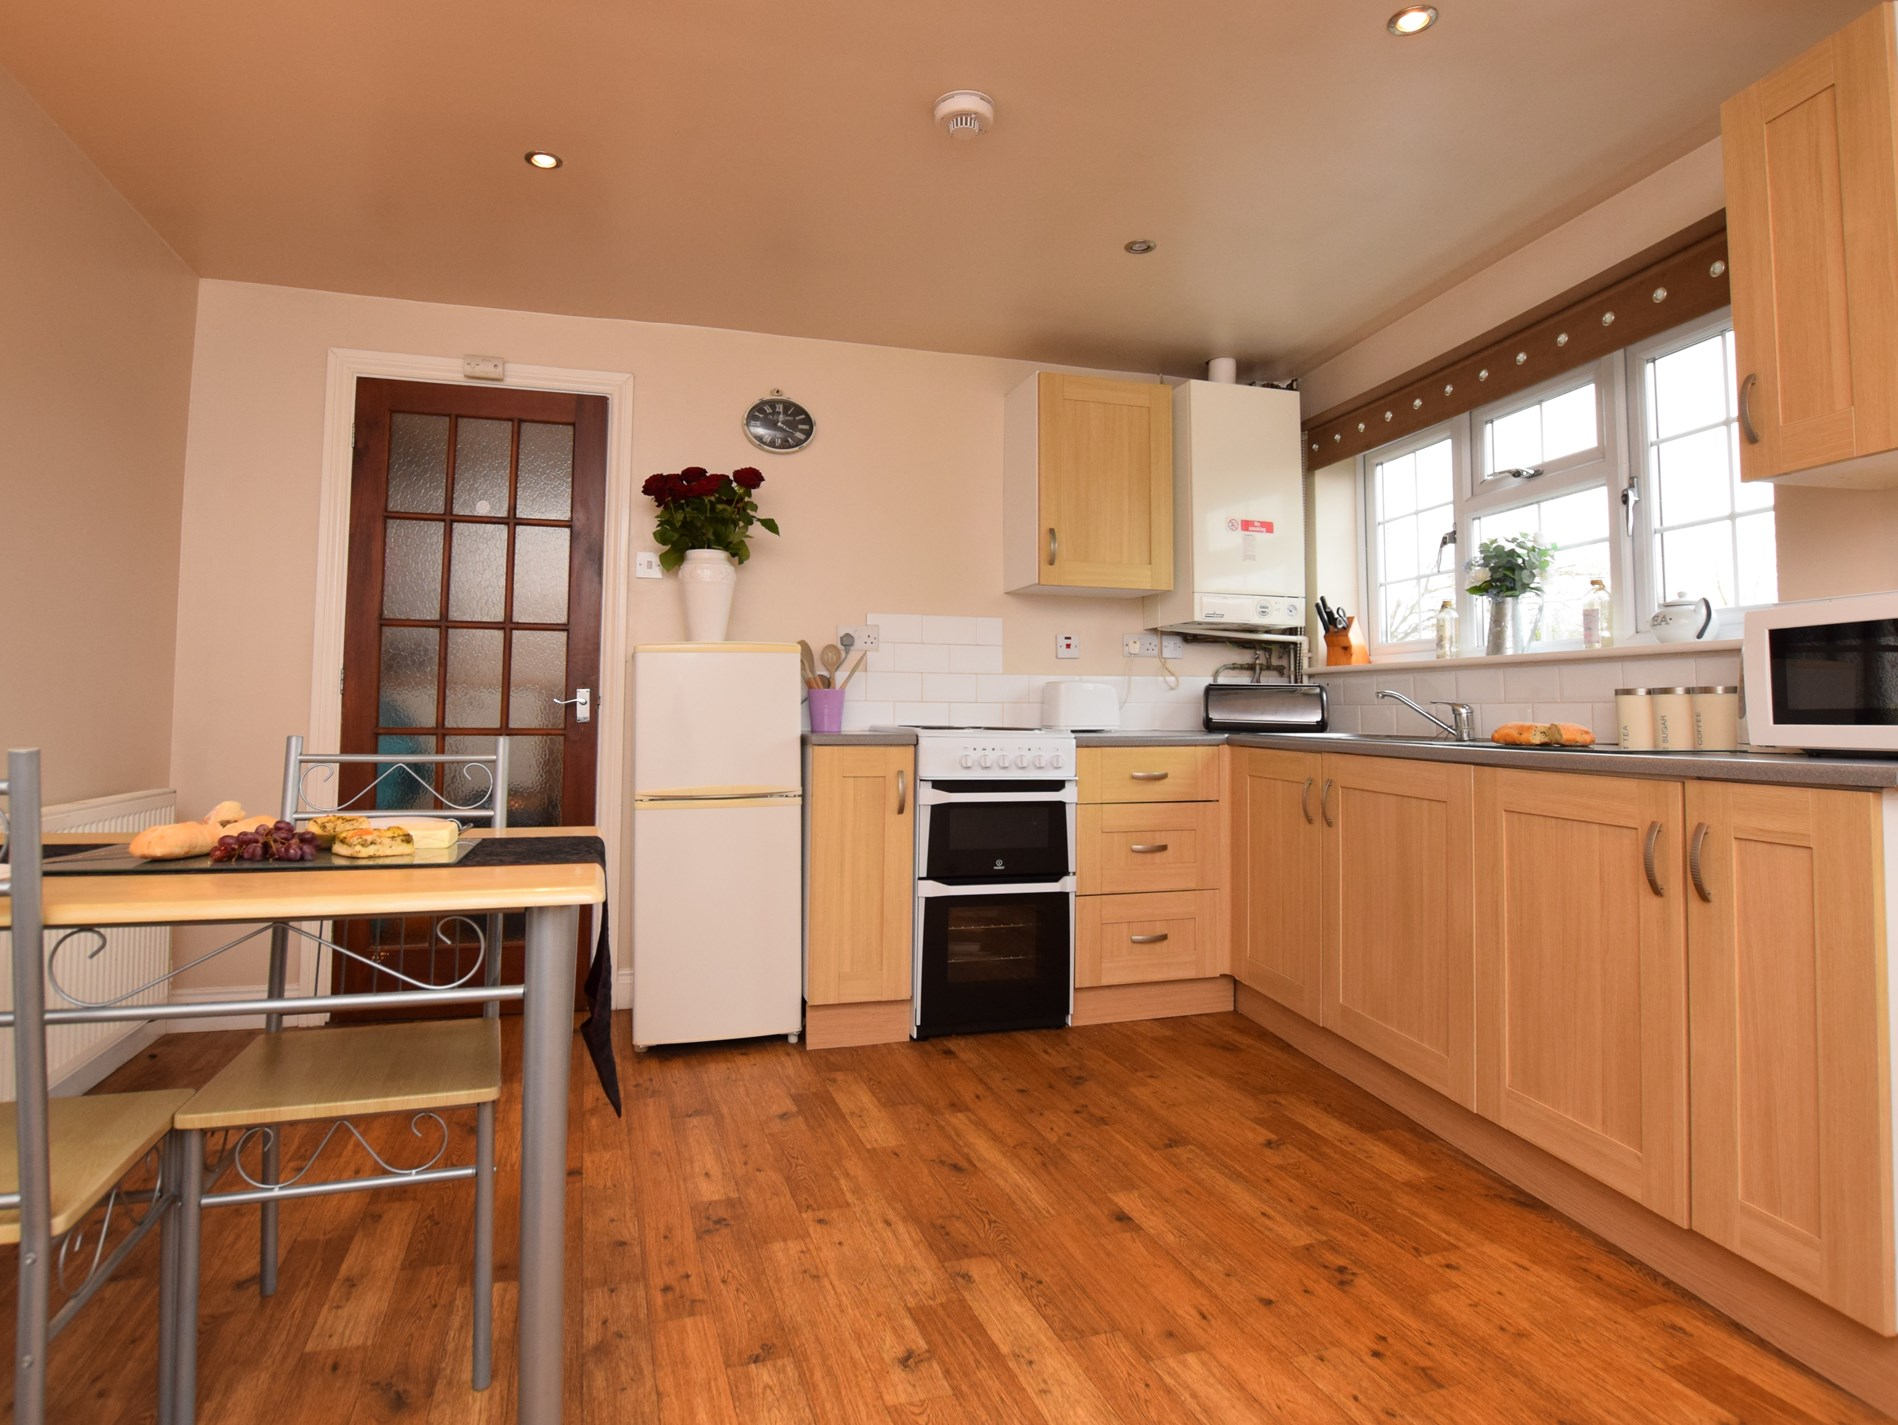 Well equipped kitchen area for all your needs